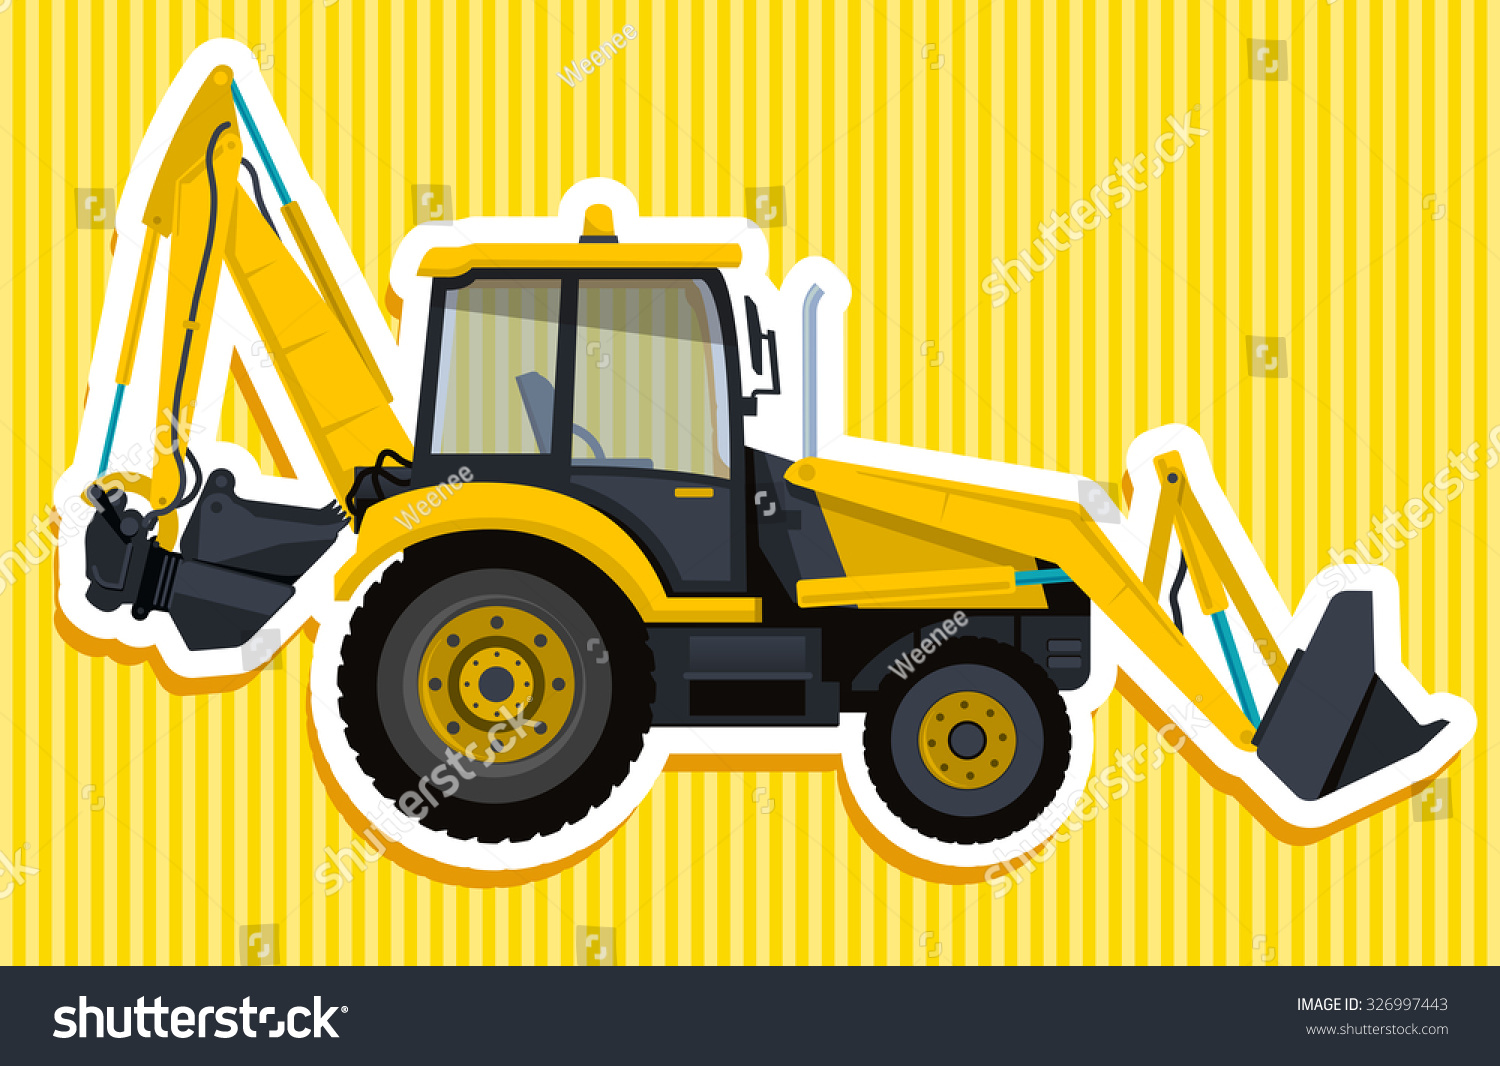 yellow big digger builds roads digging stock vector. Black Bedroom Furniture Sets. Home Design Ideas